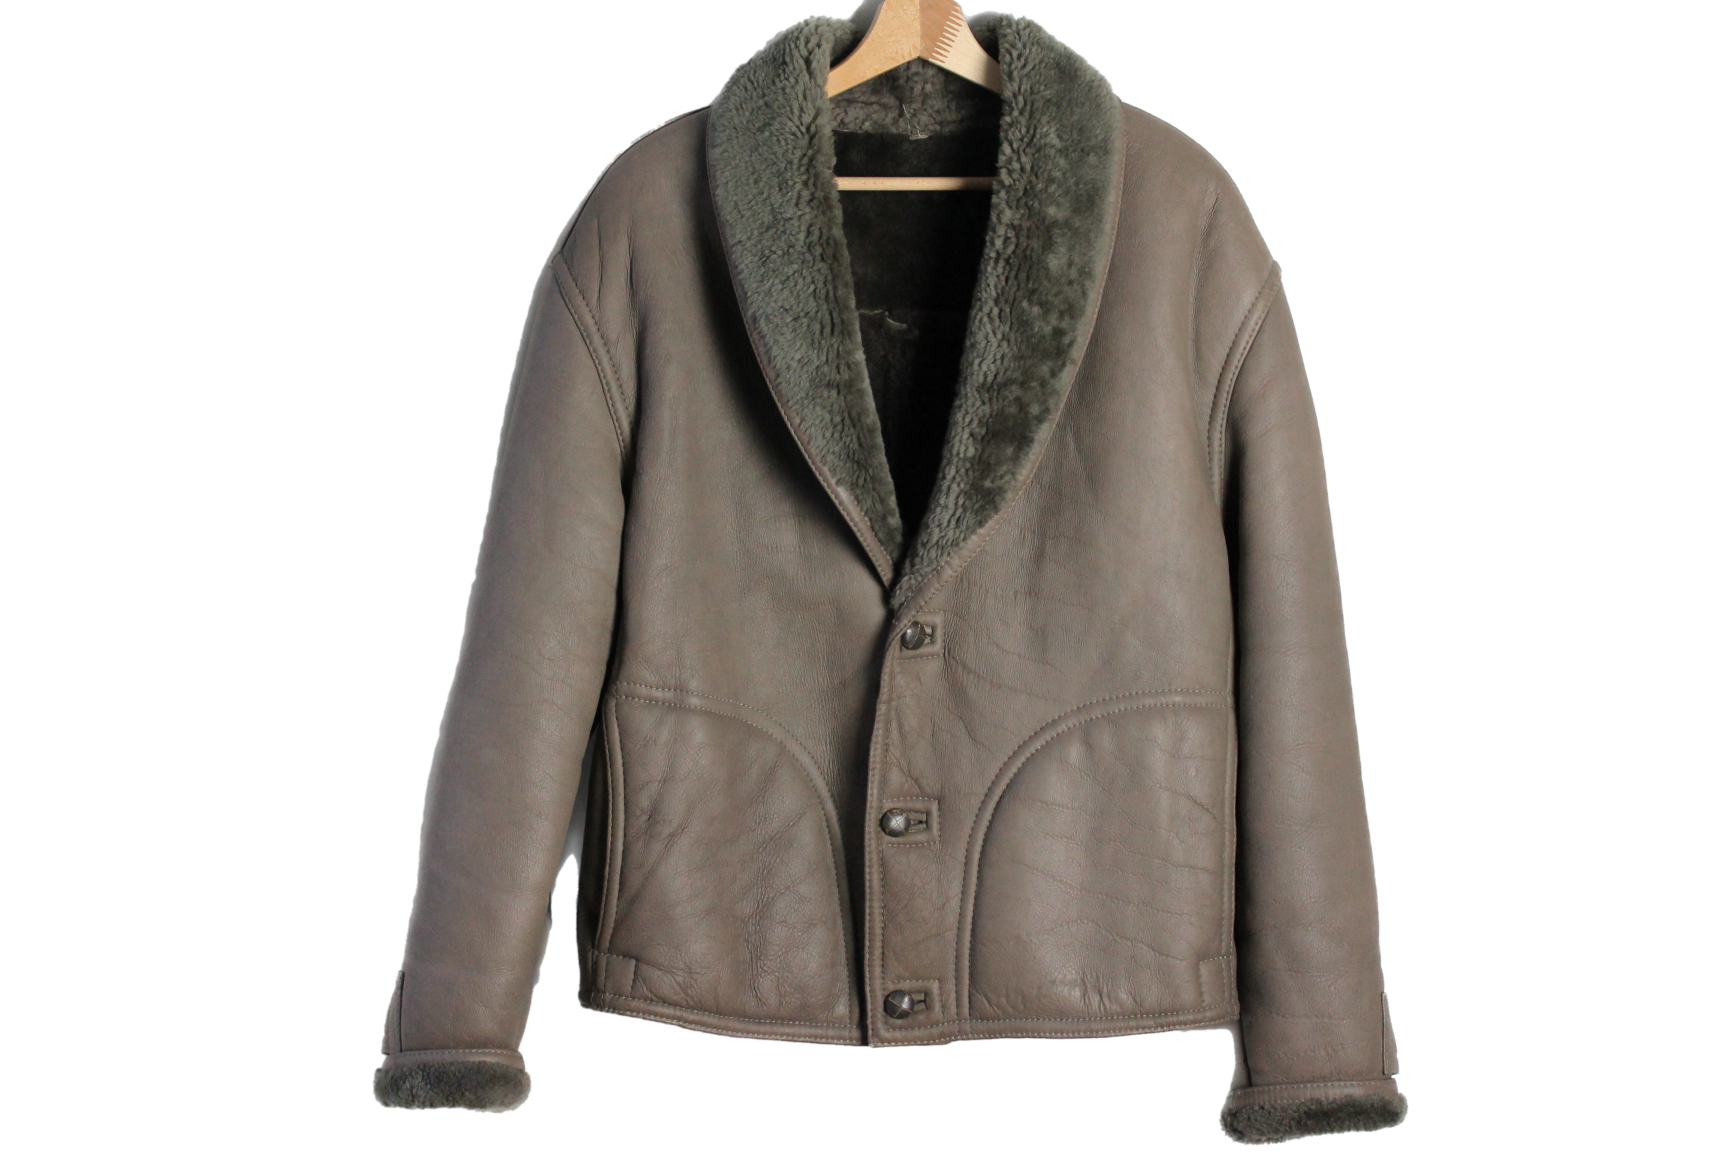 Shearling size M - L